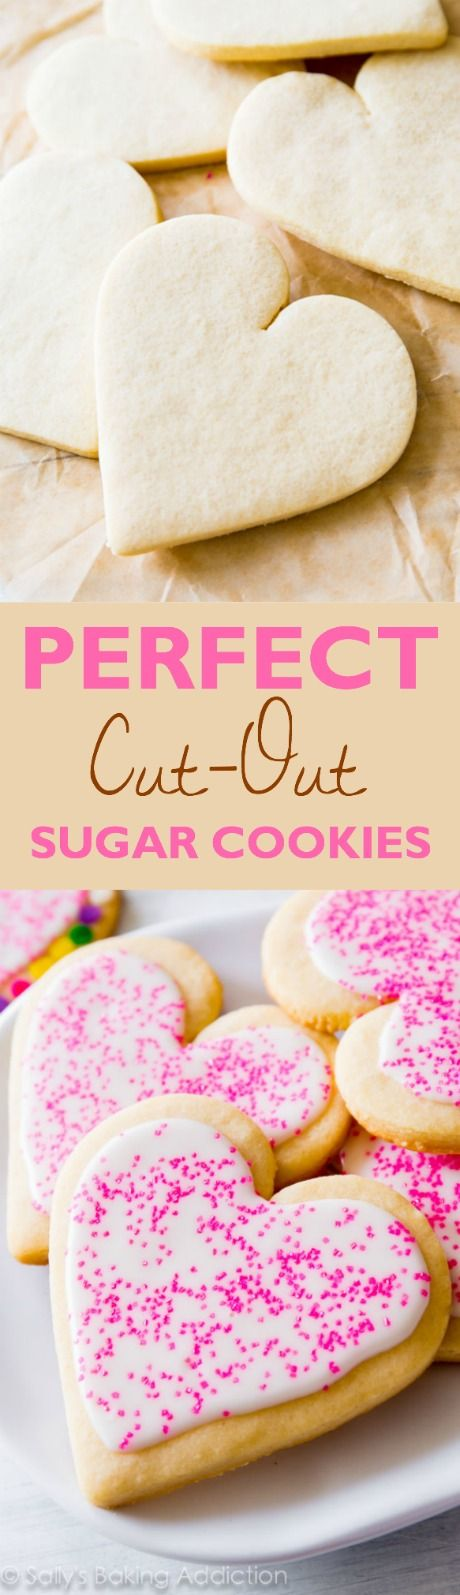 Super simple and straightforward sugar cookies! They taste incredible, hold their shape, and are easy to decorate! Found on sallysbakingaddiction.com